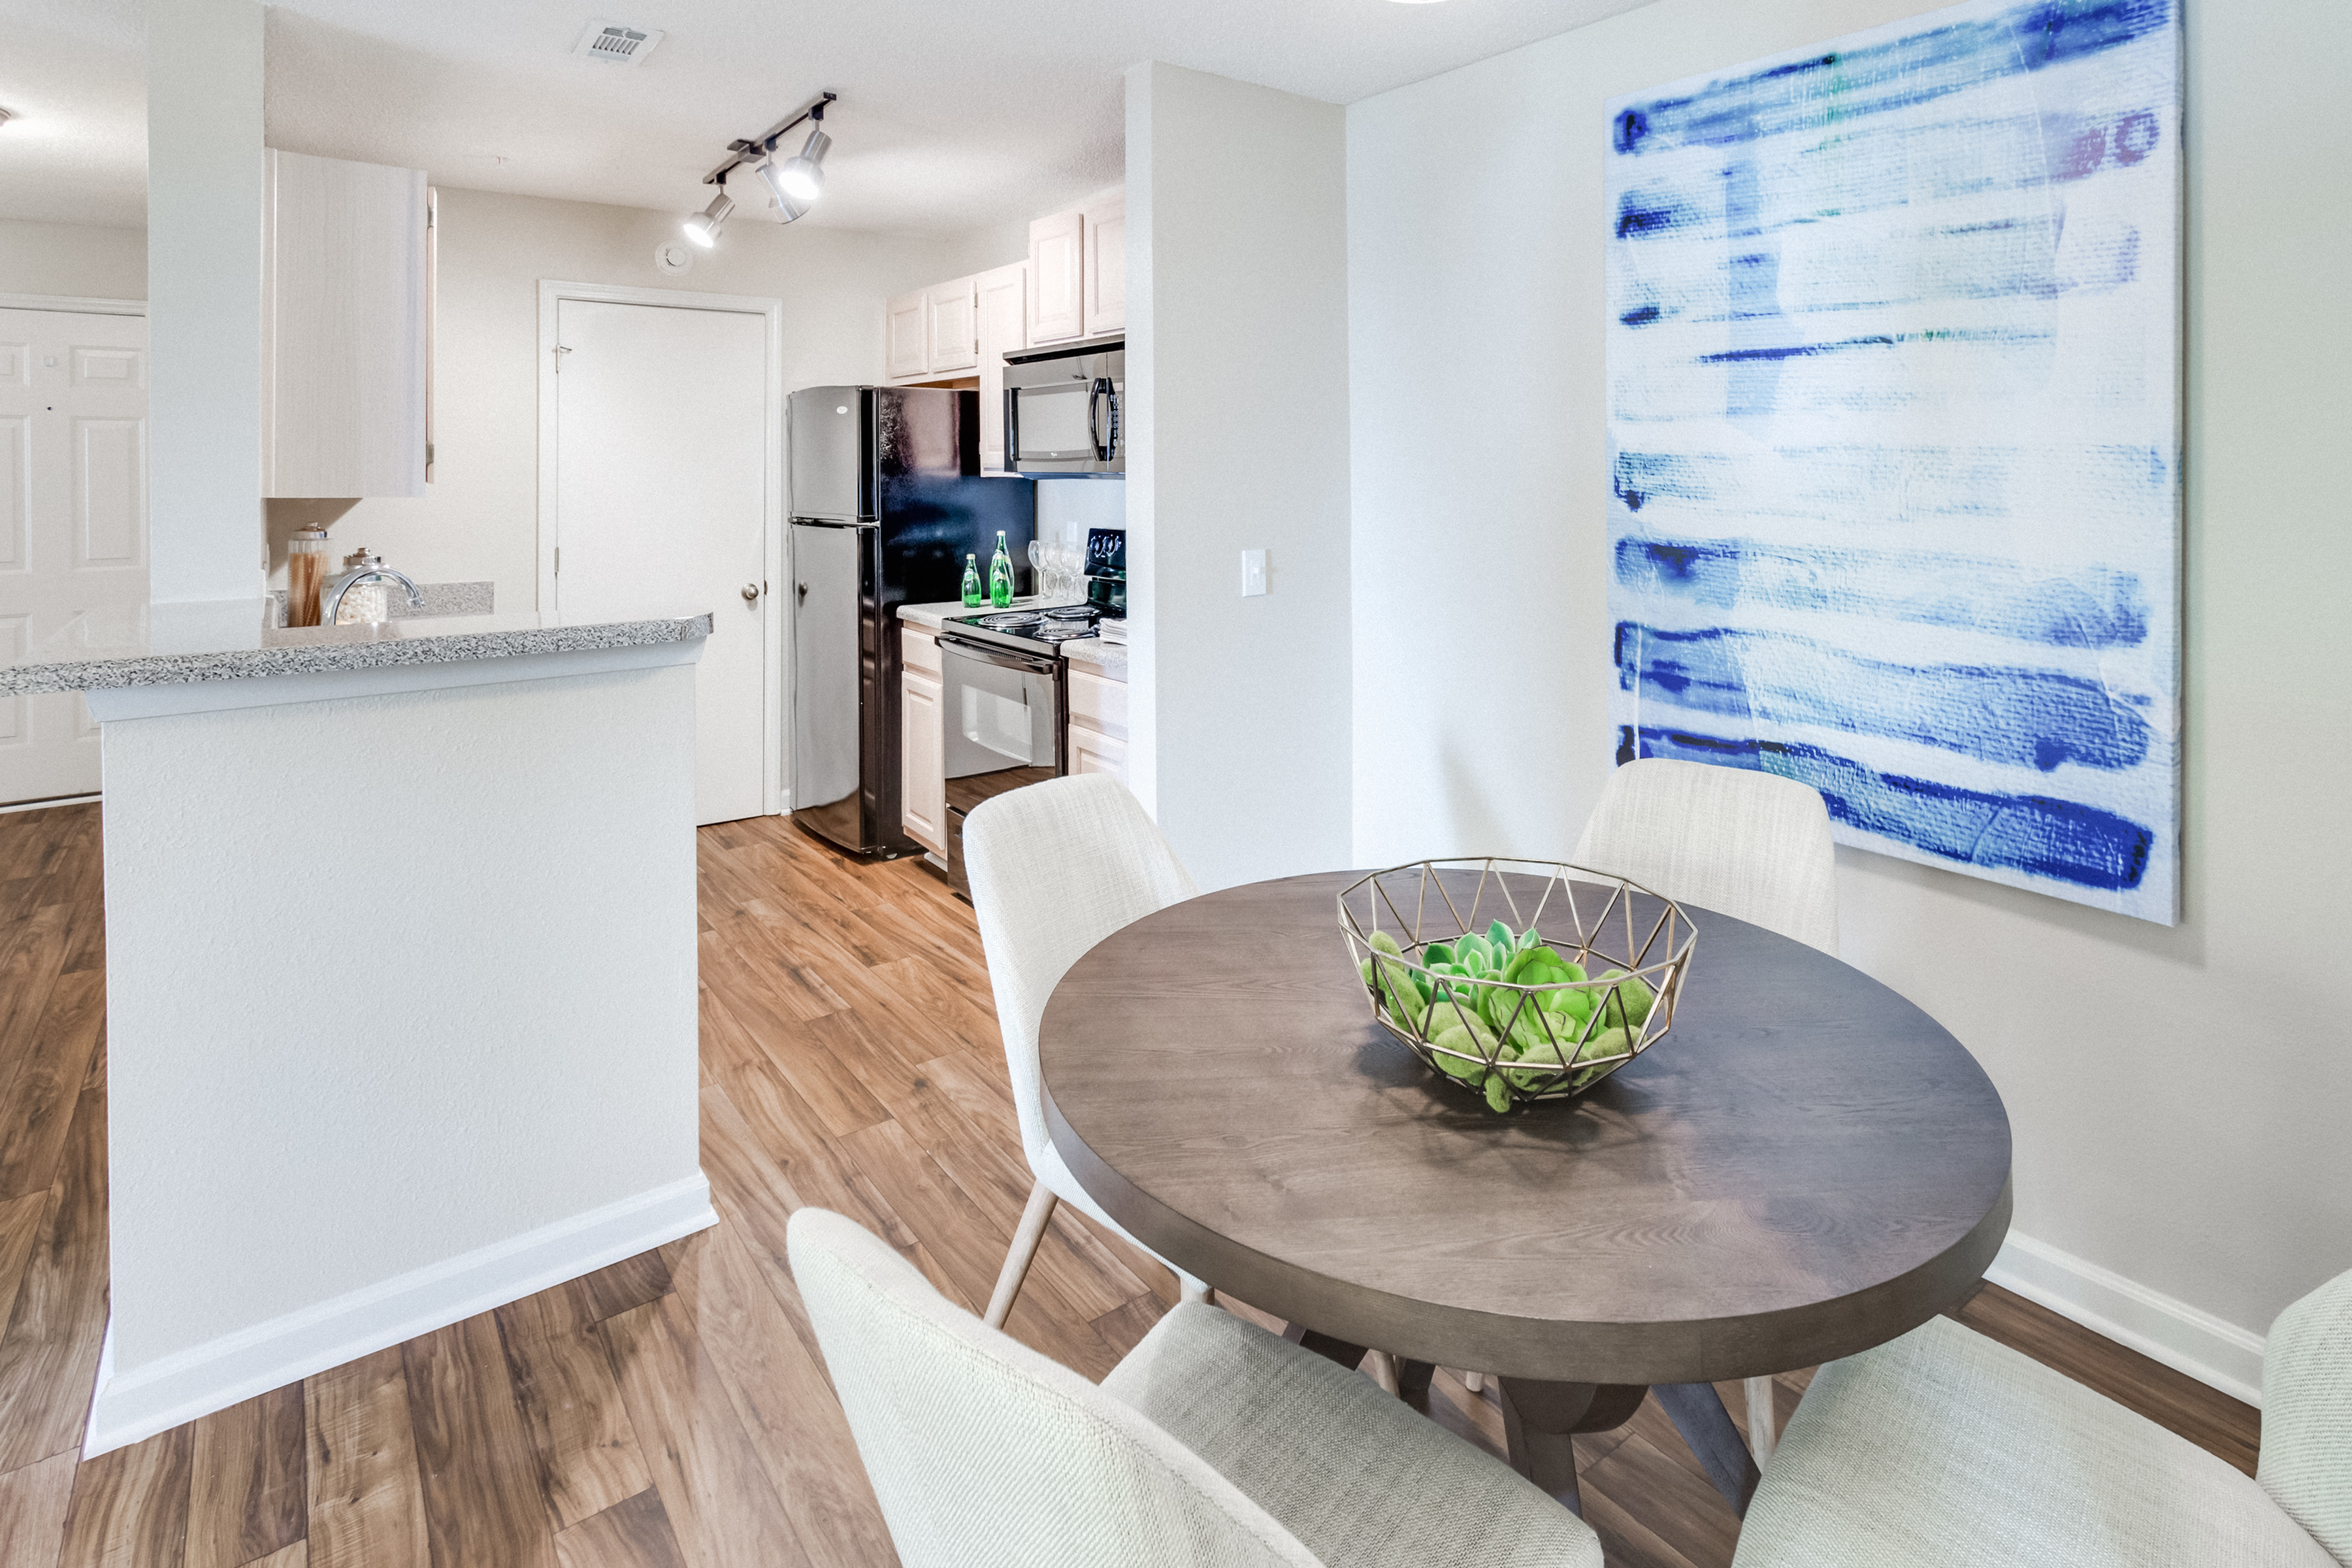 Midtown Crossing Apartment Rentals